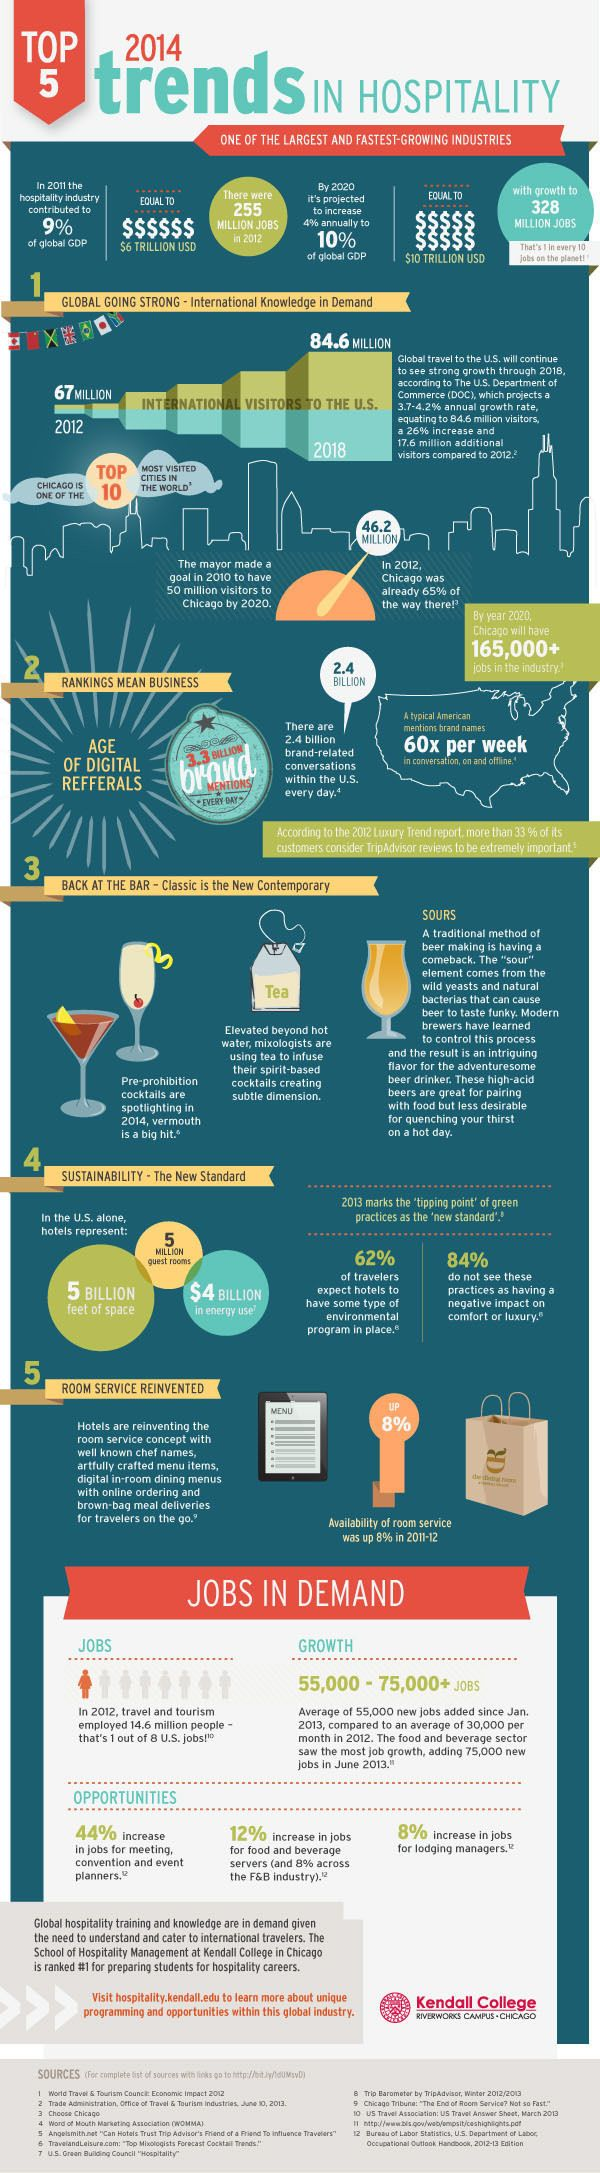 Top 5 trends in hospitality industry 2014